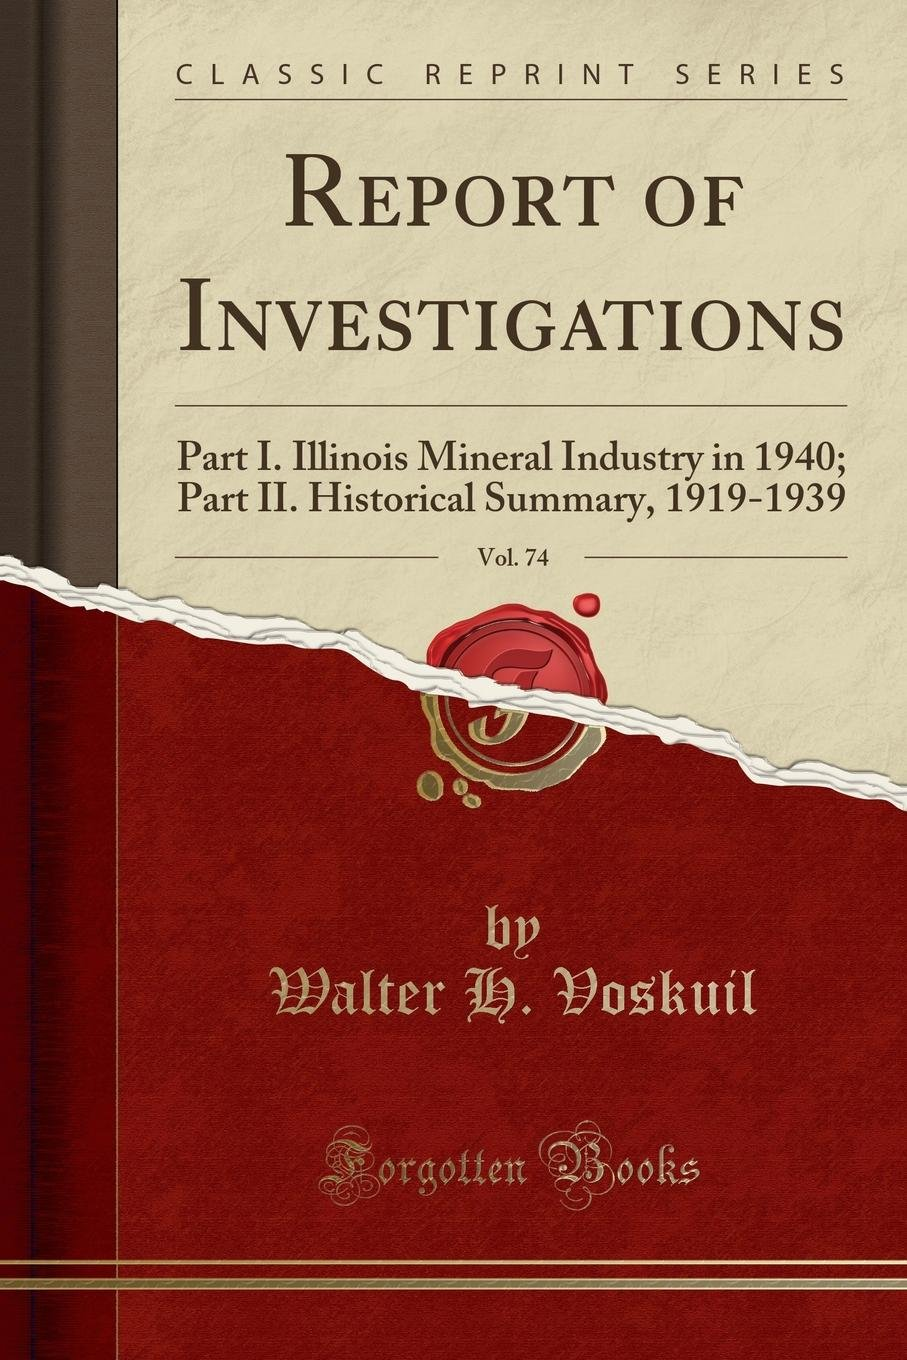 Read Online Report of Investigations, Vol. 74: Part I. Illinois Mineral Industry in 1940; Part II. Historical Summary, 1919-1939 (Classic Reprint) pdf epub